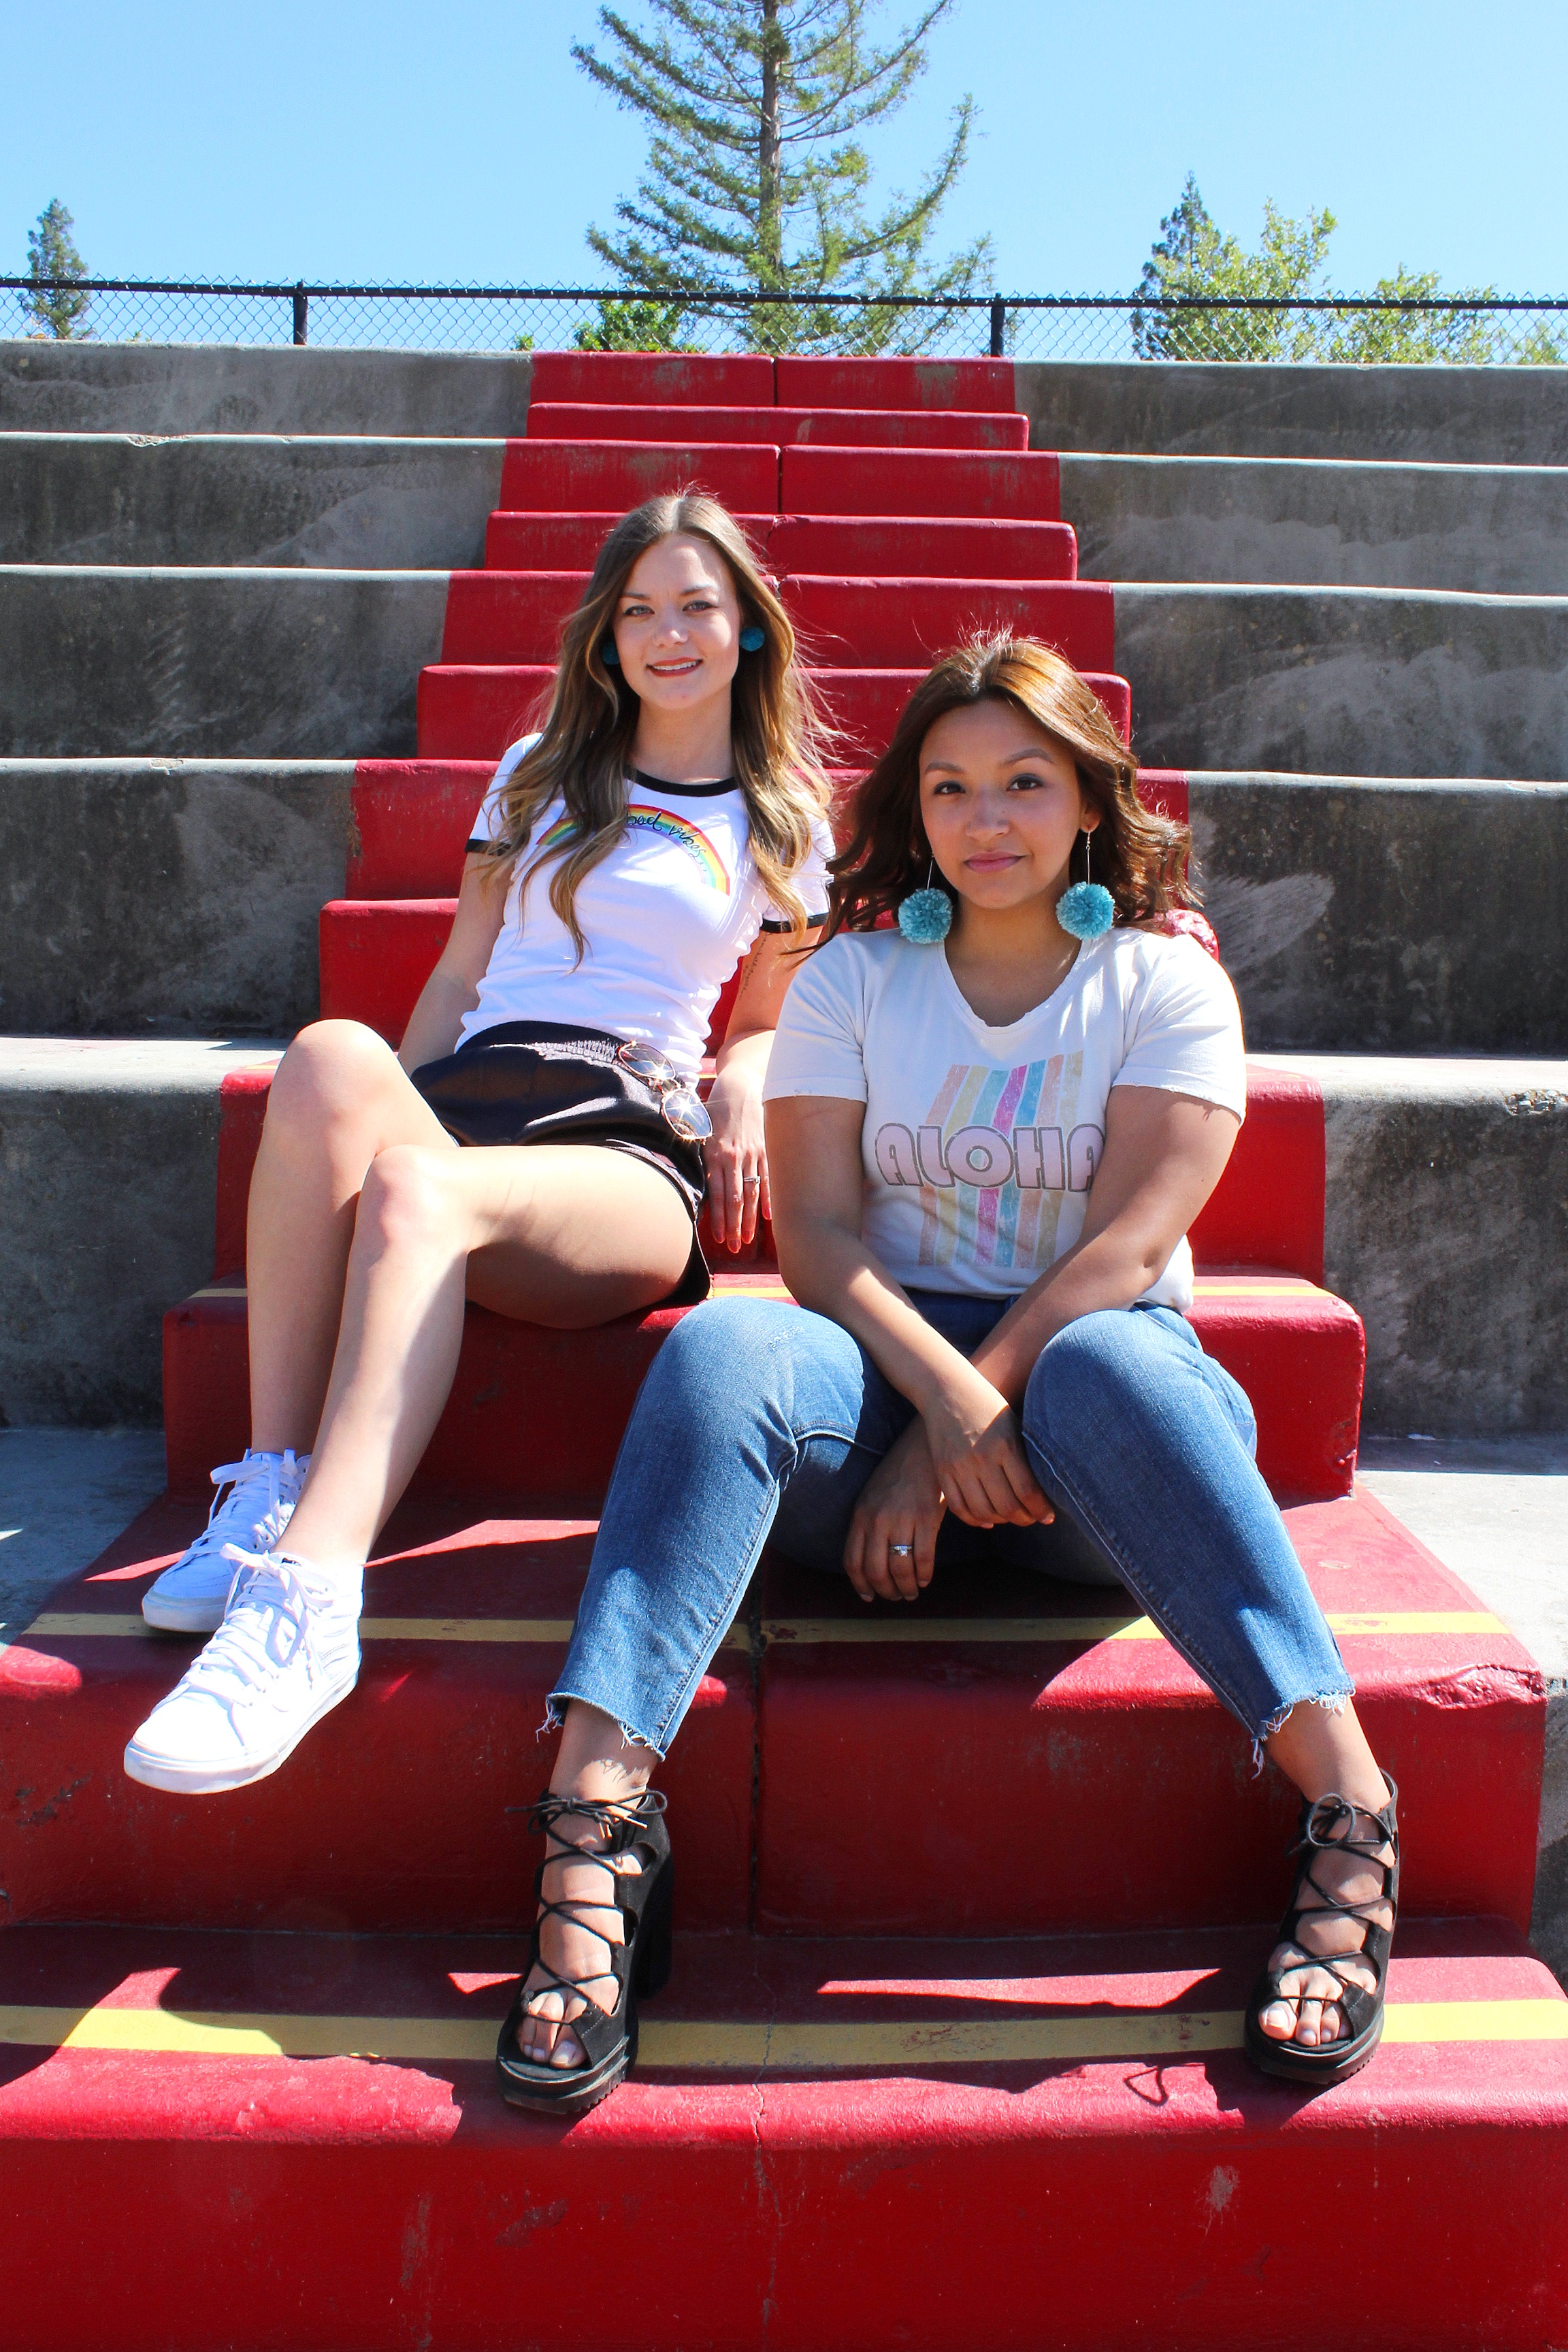 70's Style Women's Fashion. Distressed Tees, Ringer Style Tees and Hot Shorts.